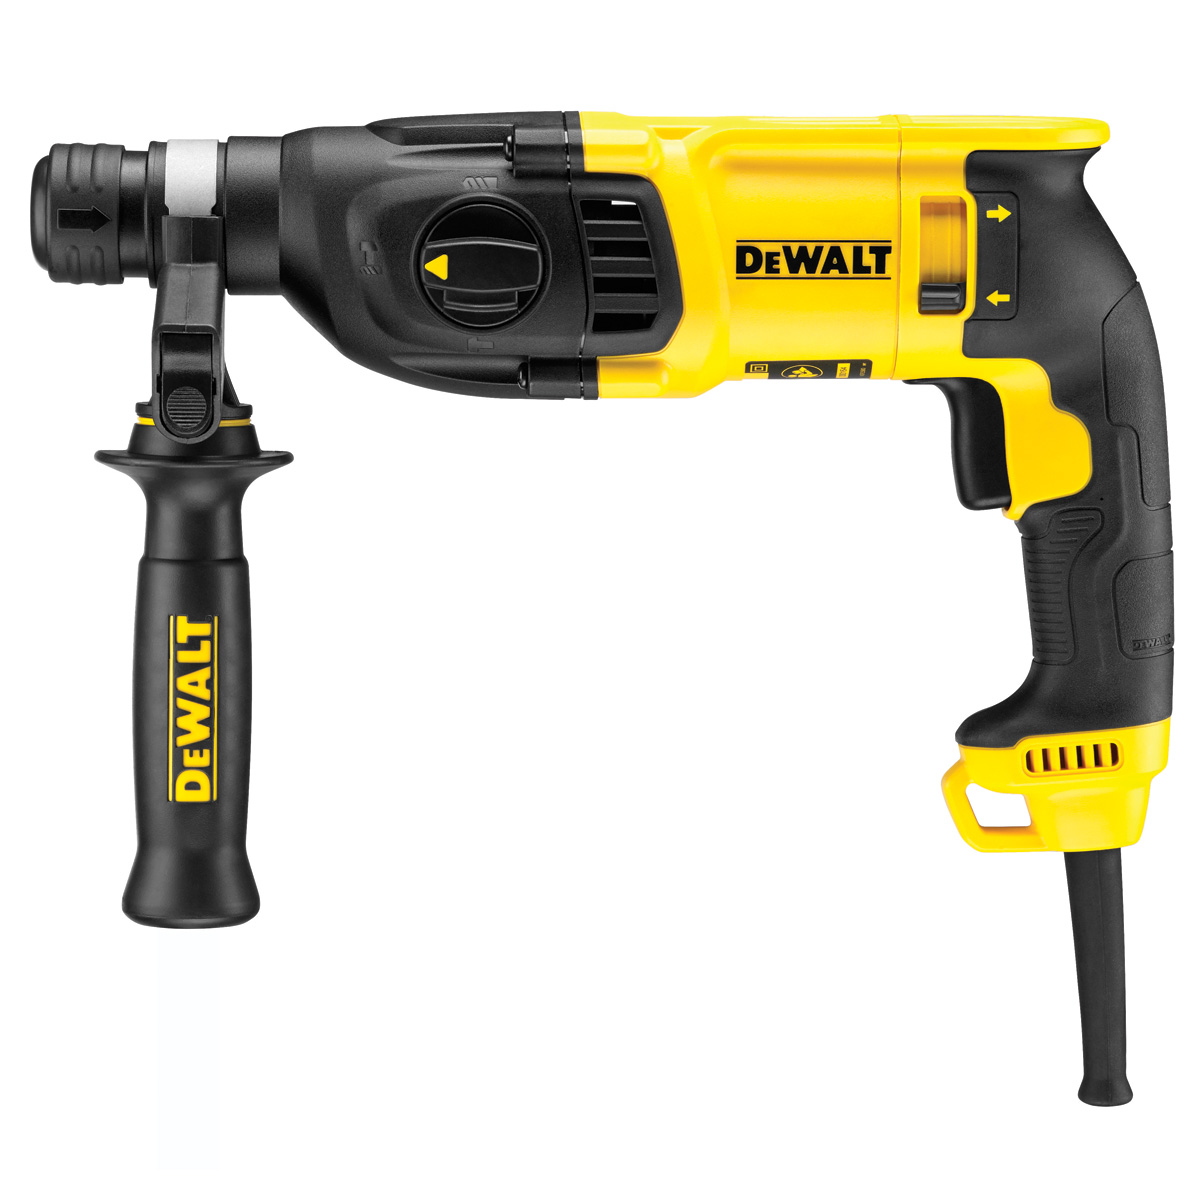 DeWALT D25133K-B5 - Heavy Duty SDS Plus Comb. Hammer; 26mm; 220V